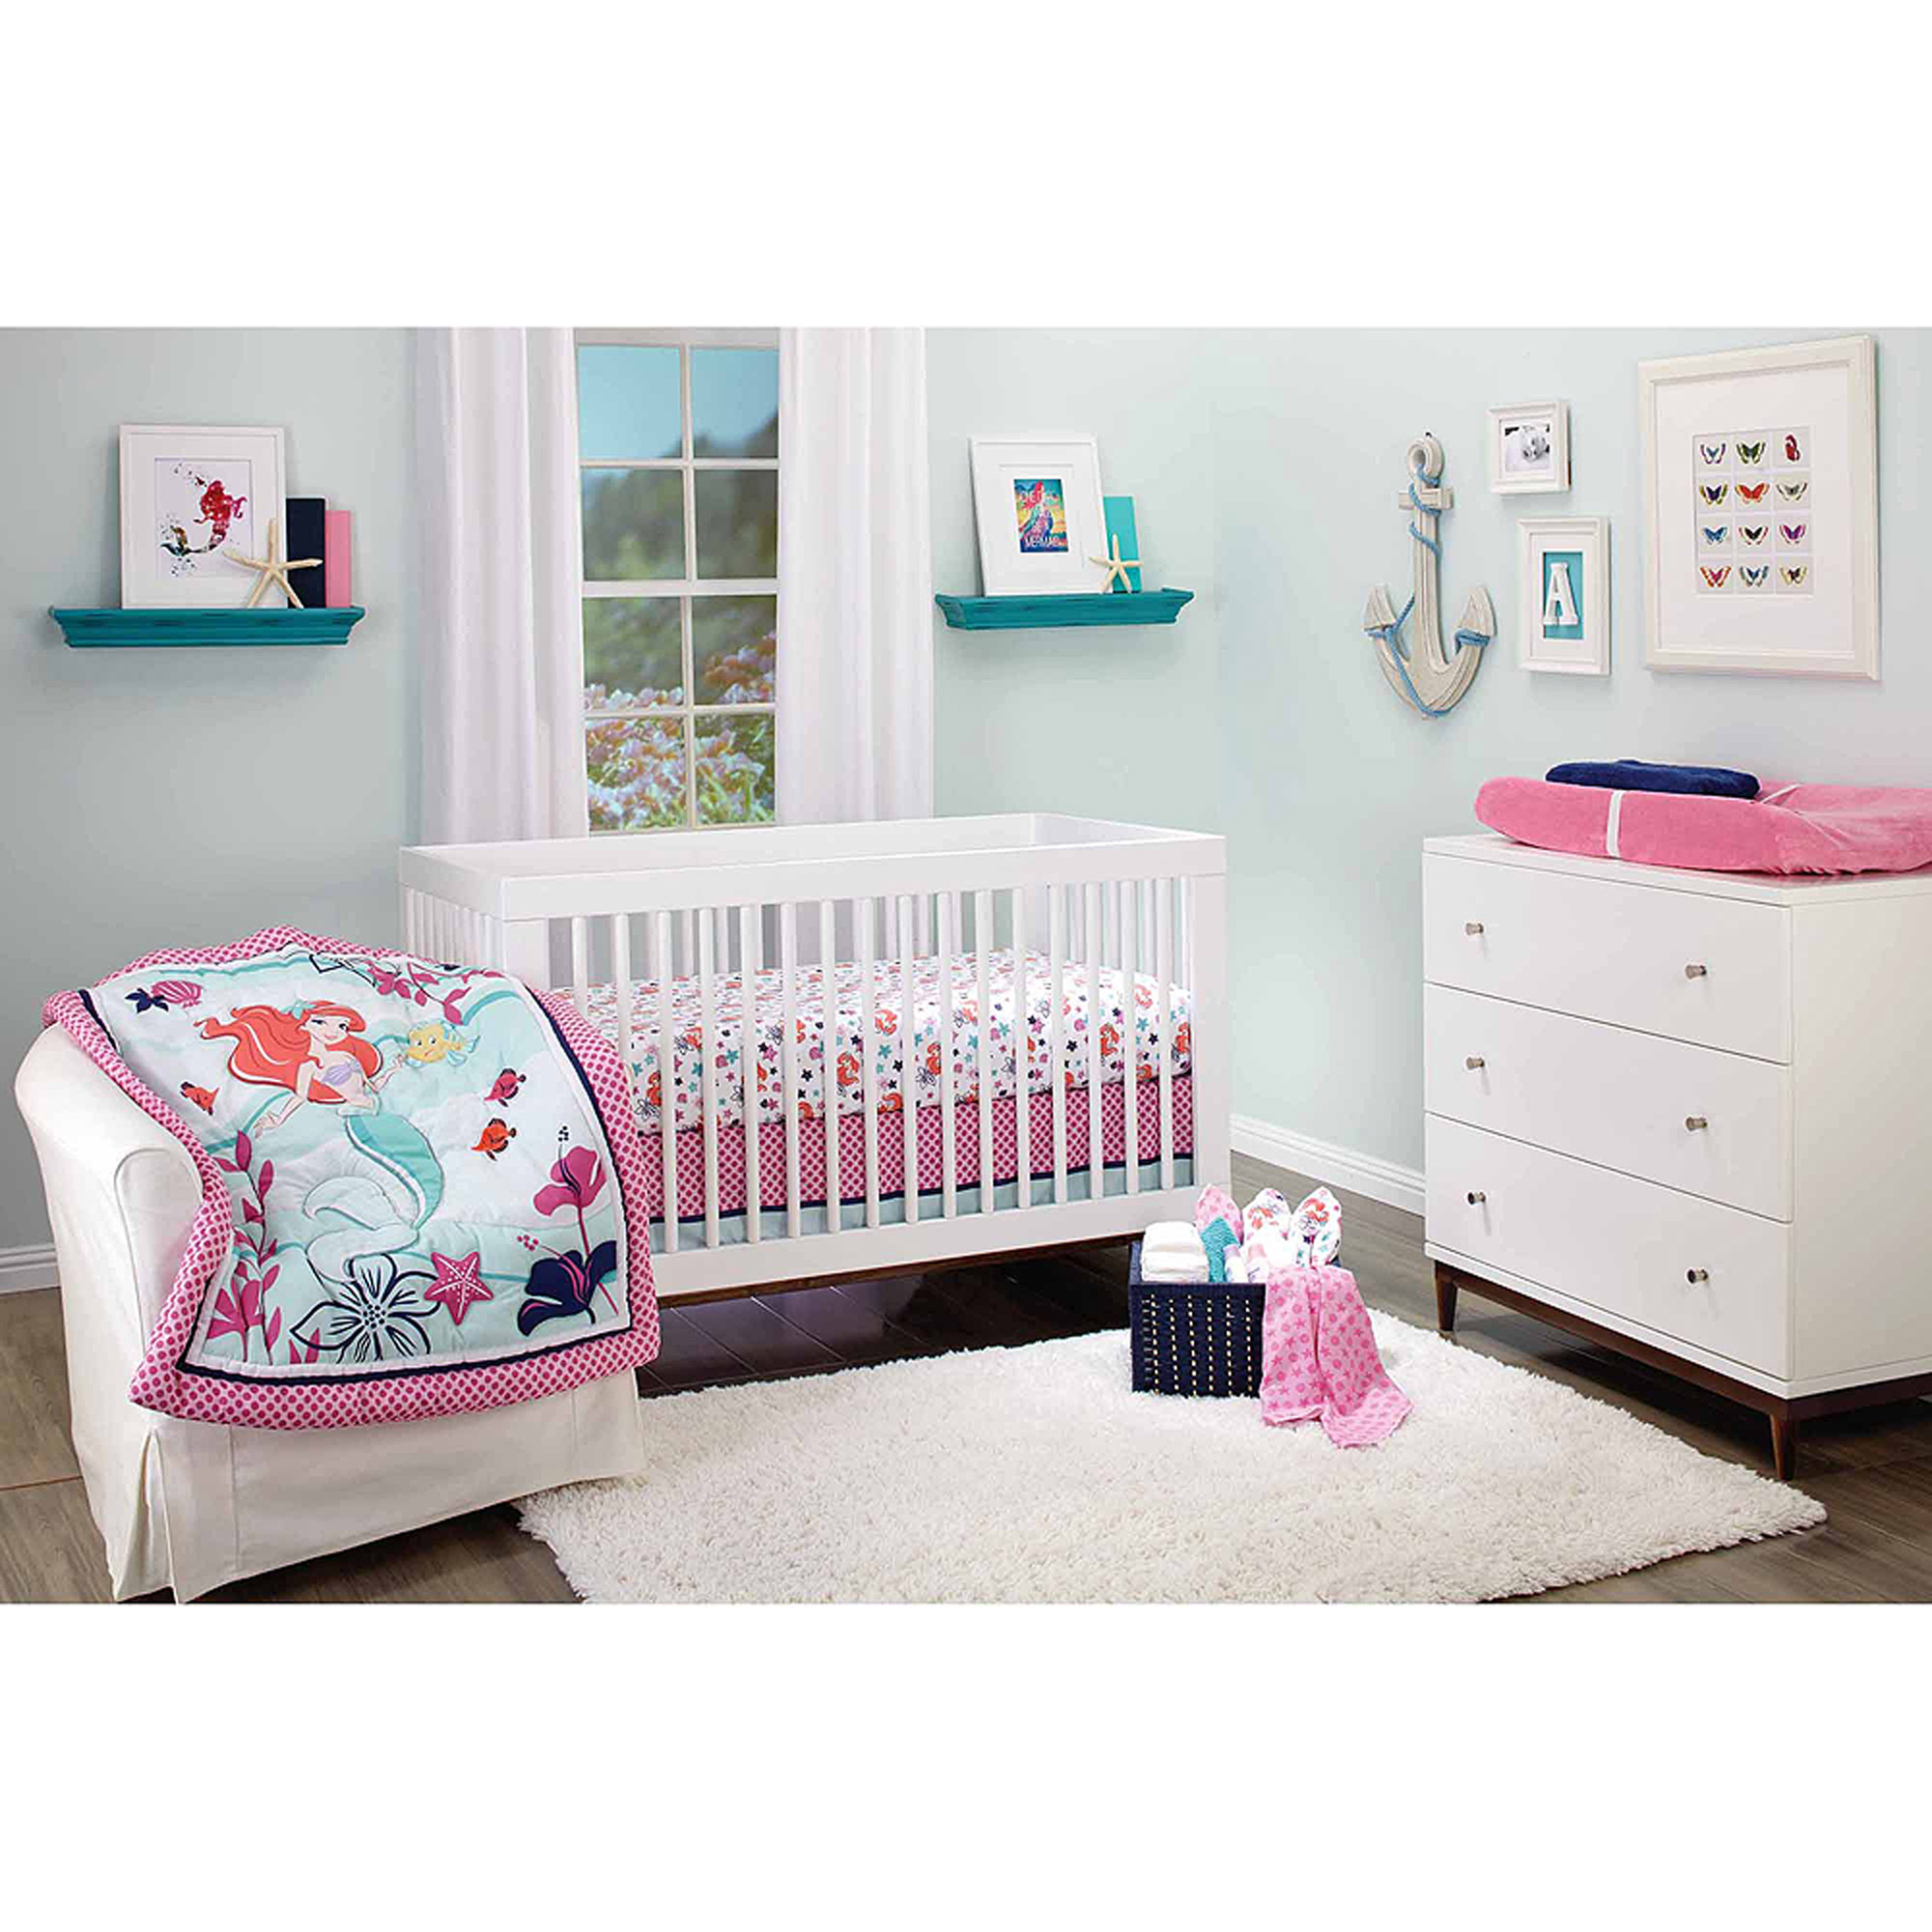 Disney Ariel Sea Treasures 3-Piece Crib Bedding Set